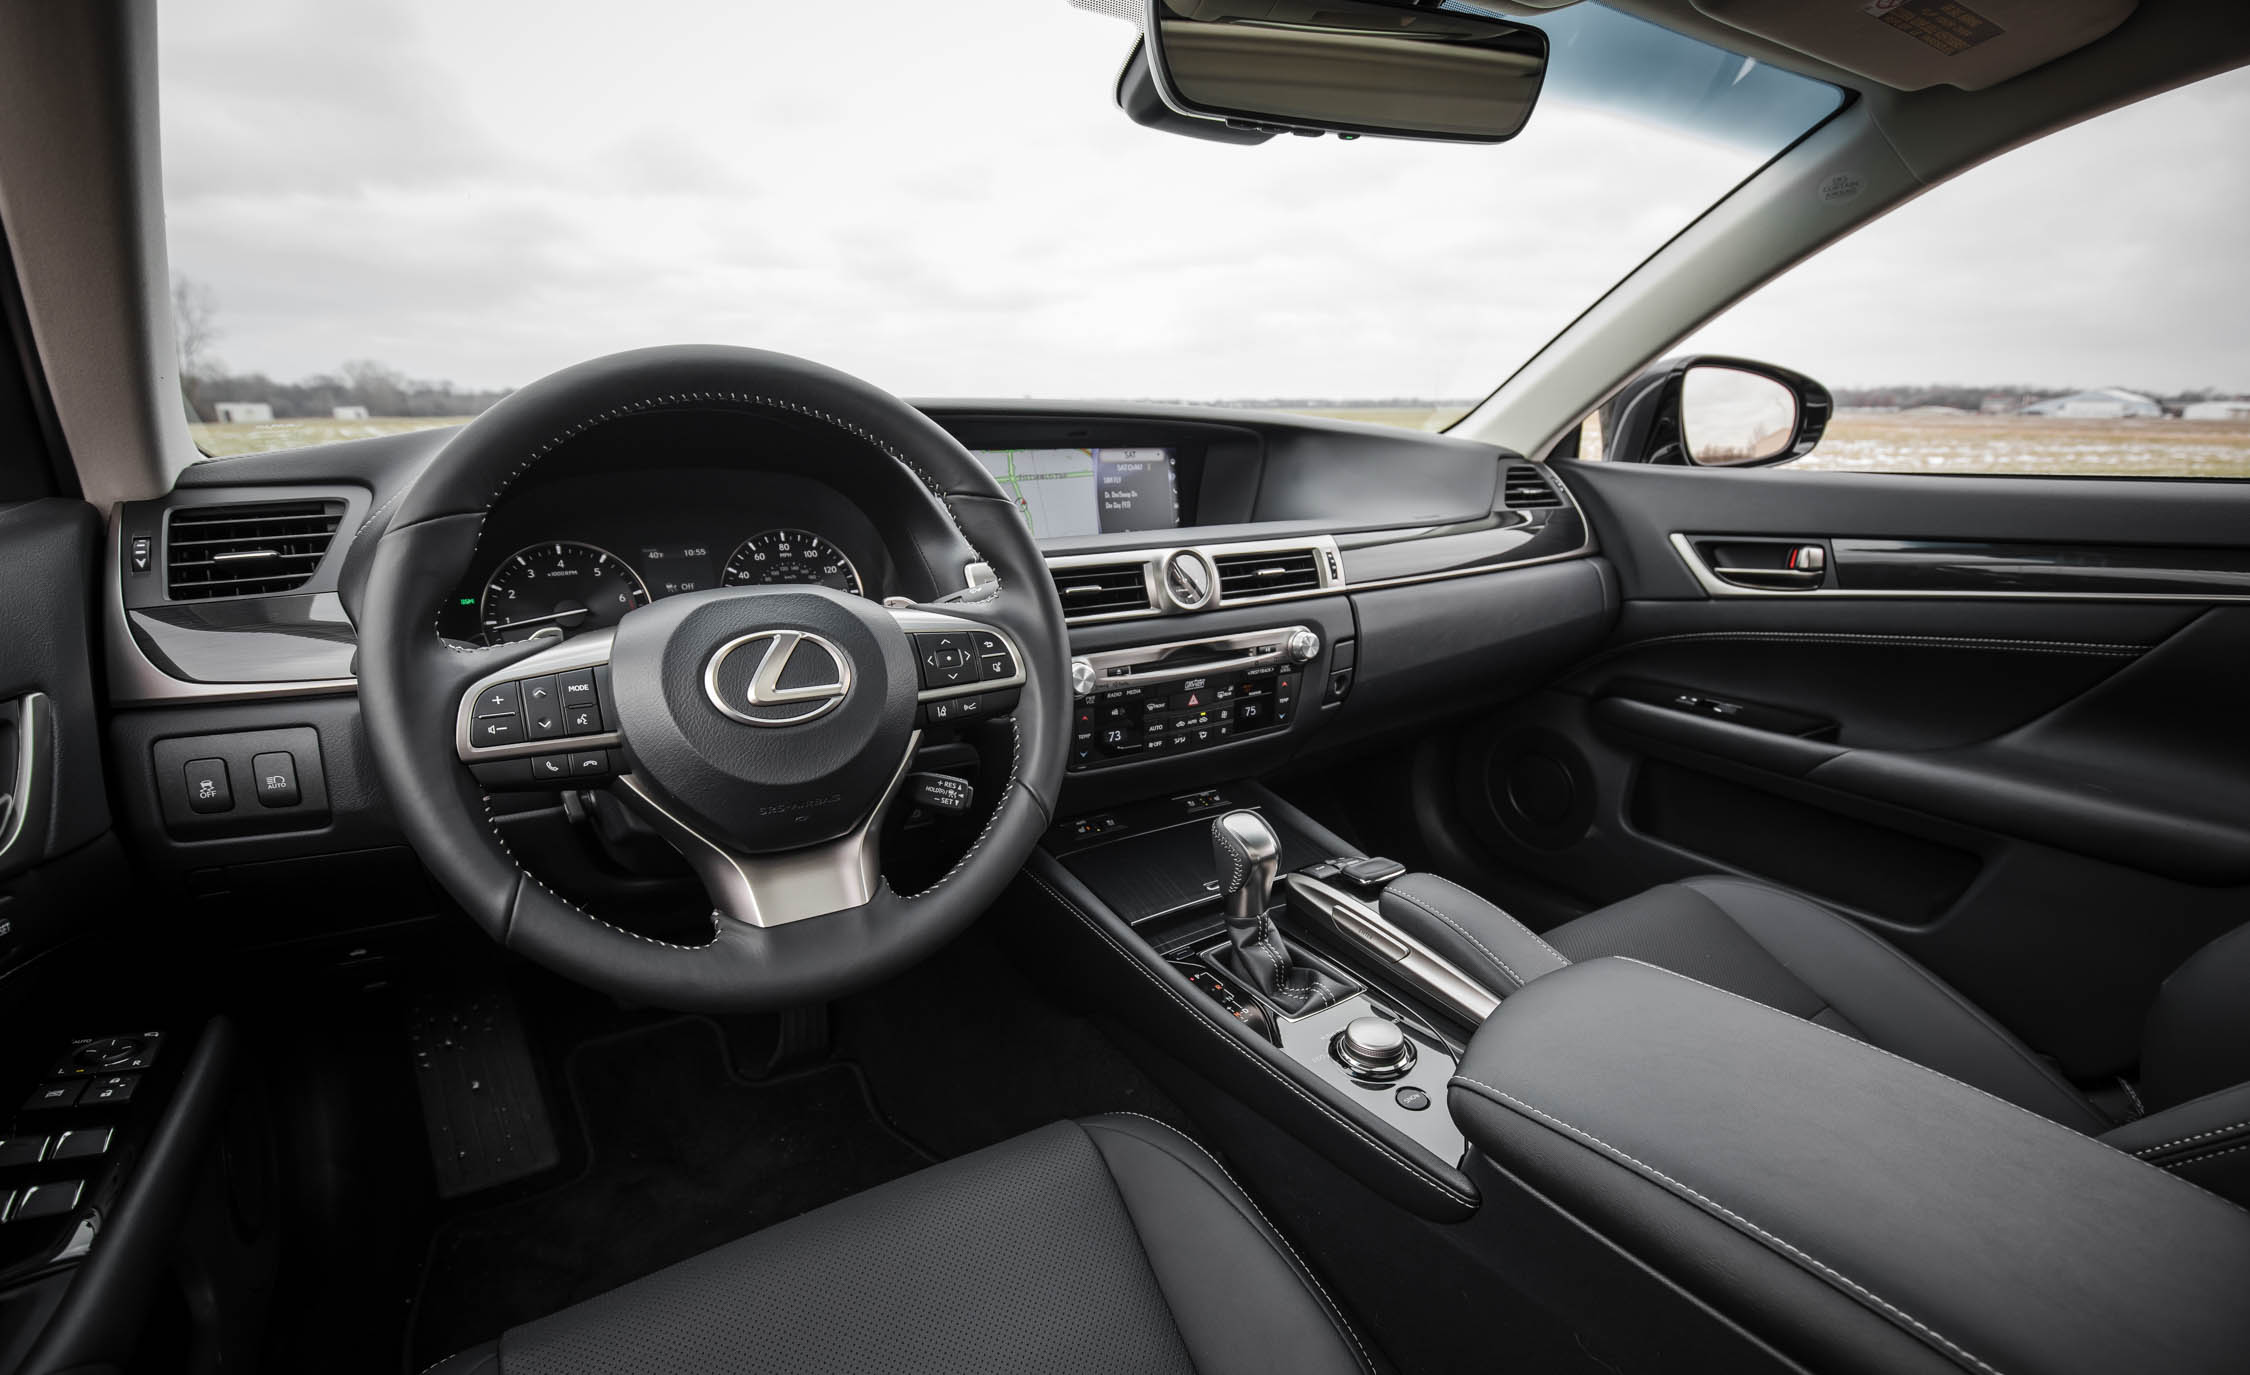 2017 Lexus GS200t Interior Cockpit And Dash (Photo 16 of 26)